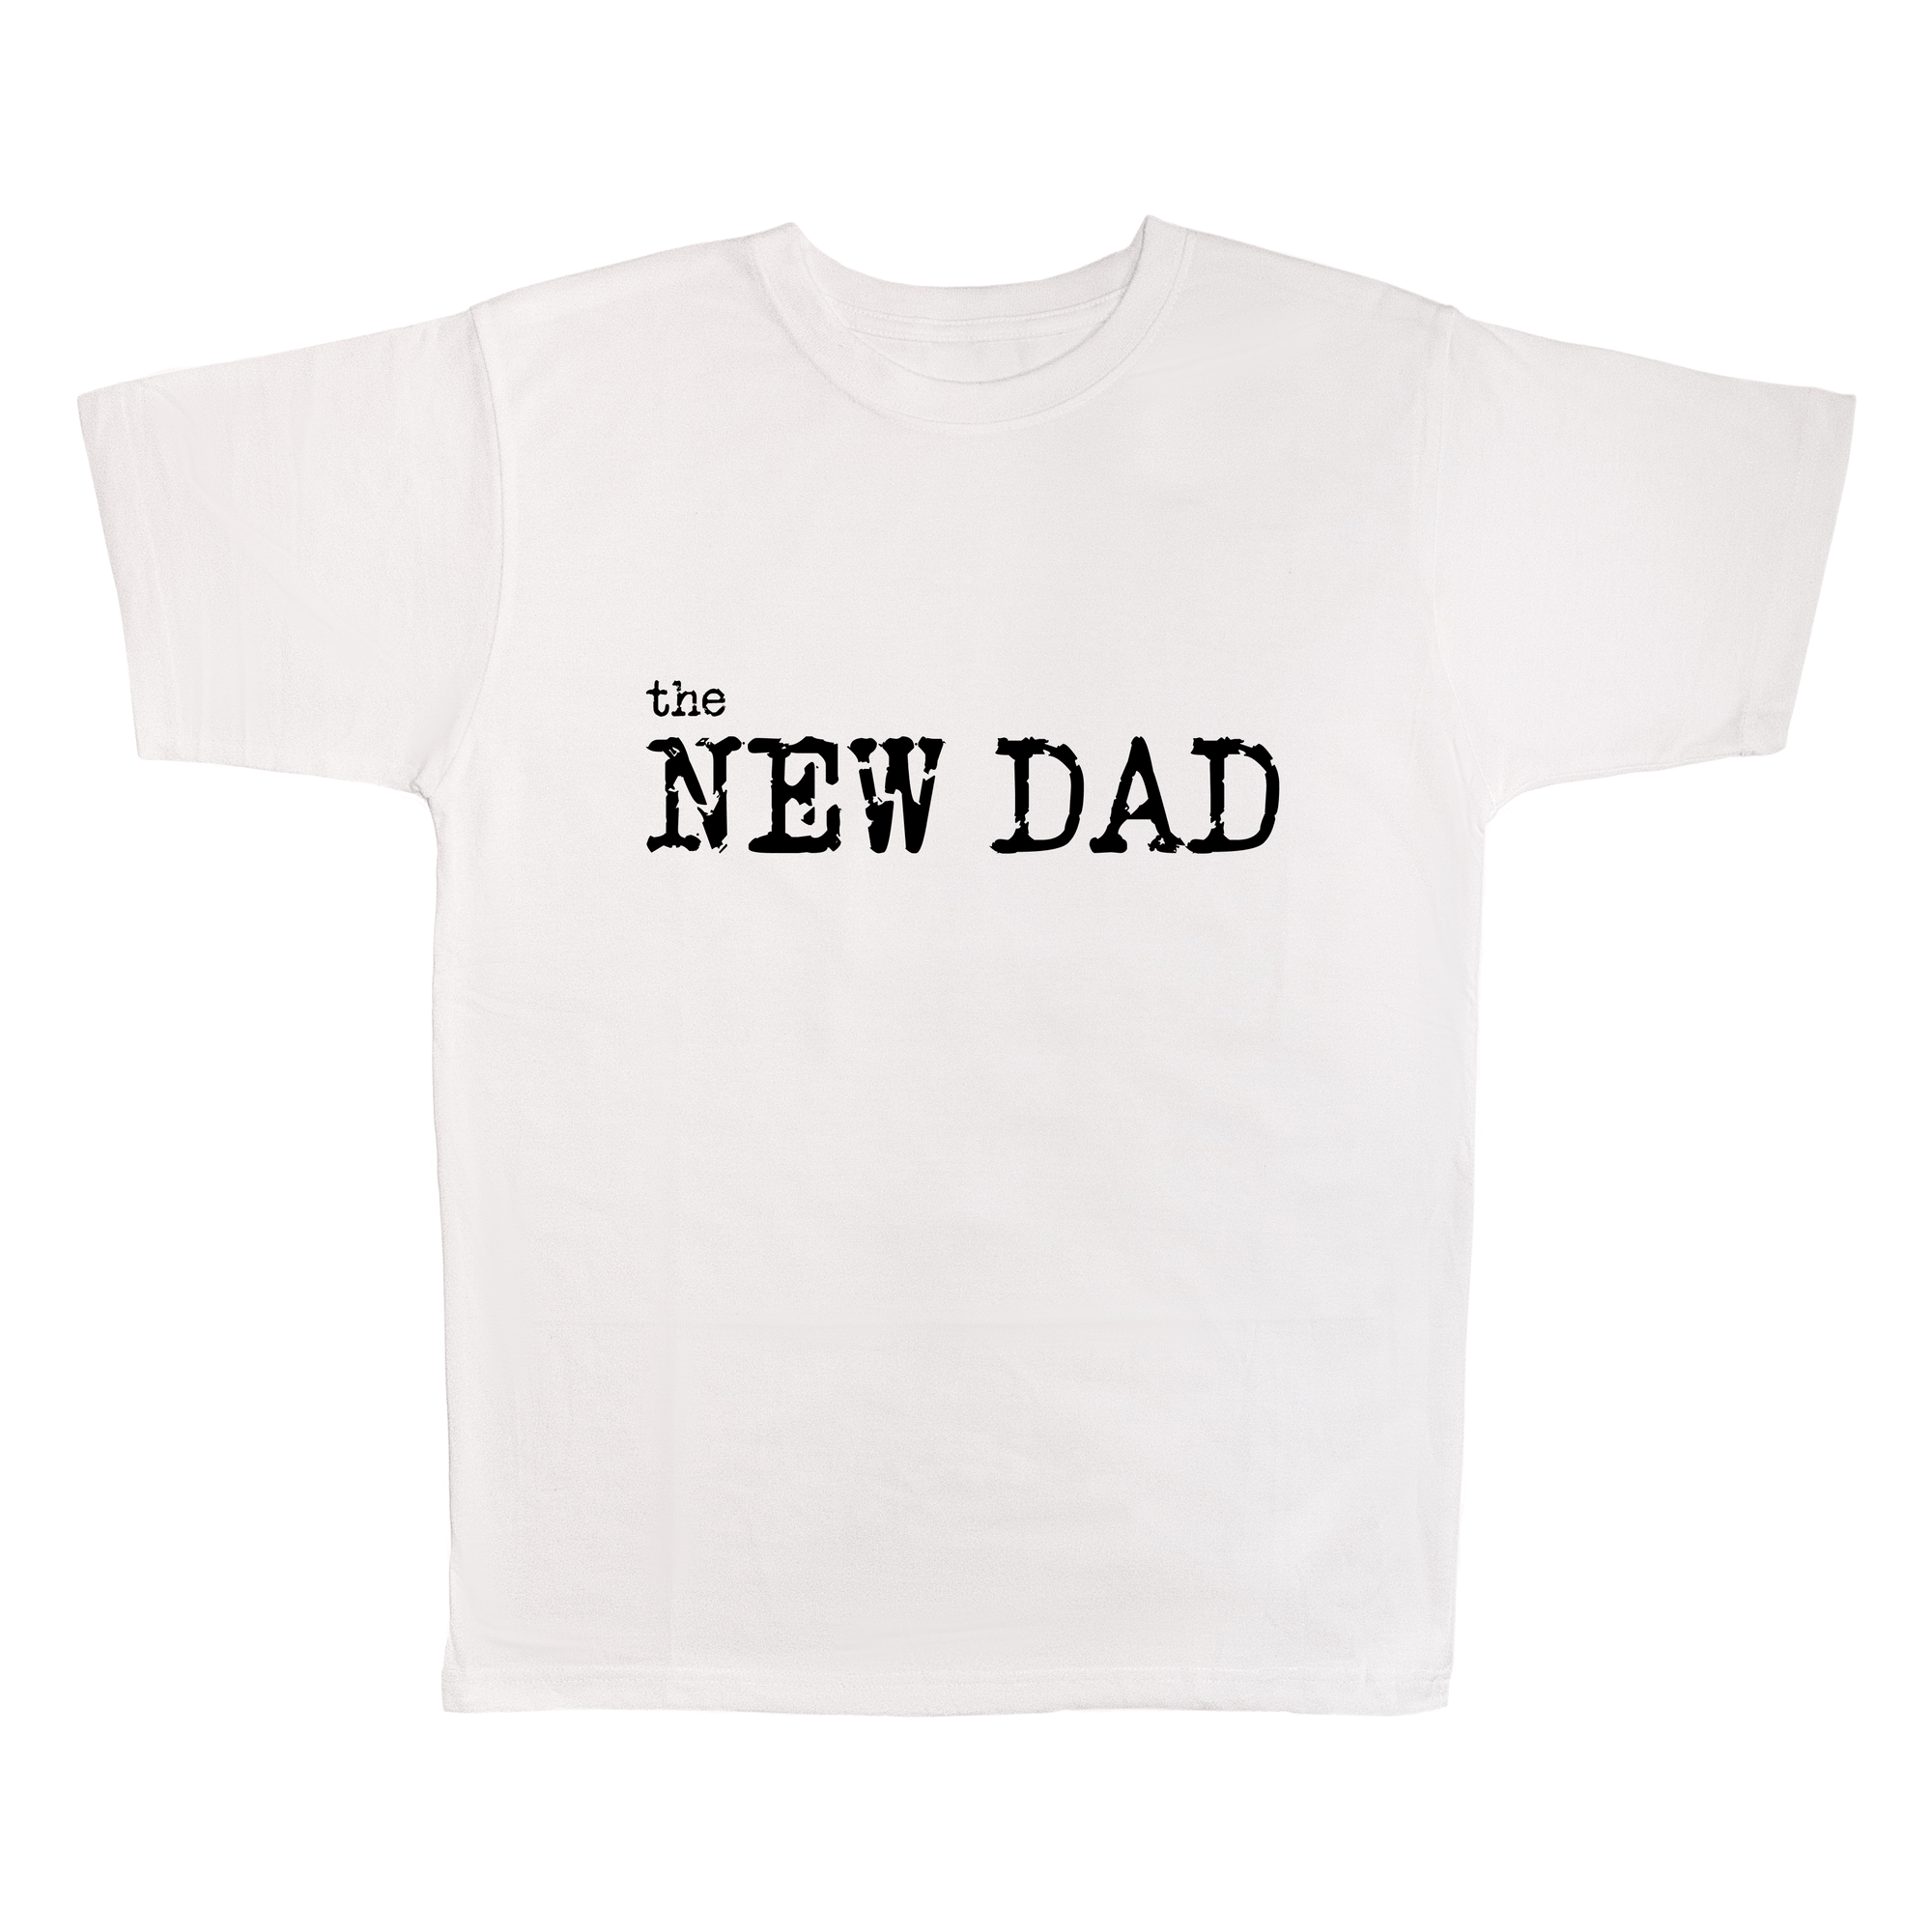 The New Dad, 100% Polyester Adult Shirt